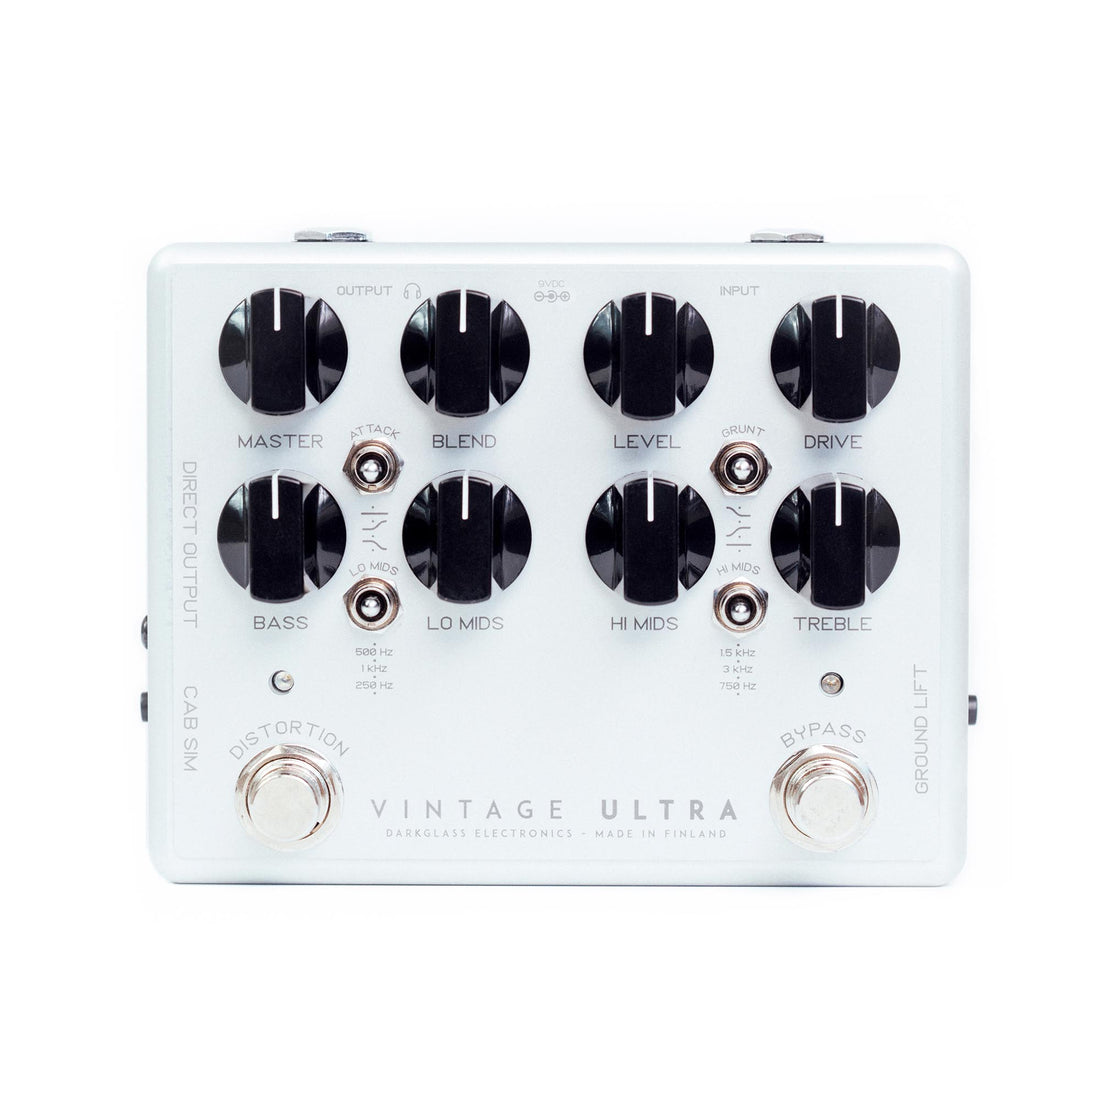 Darkglass Vintage Ultra 2.0 Bass Preamp Pedal